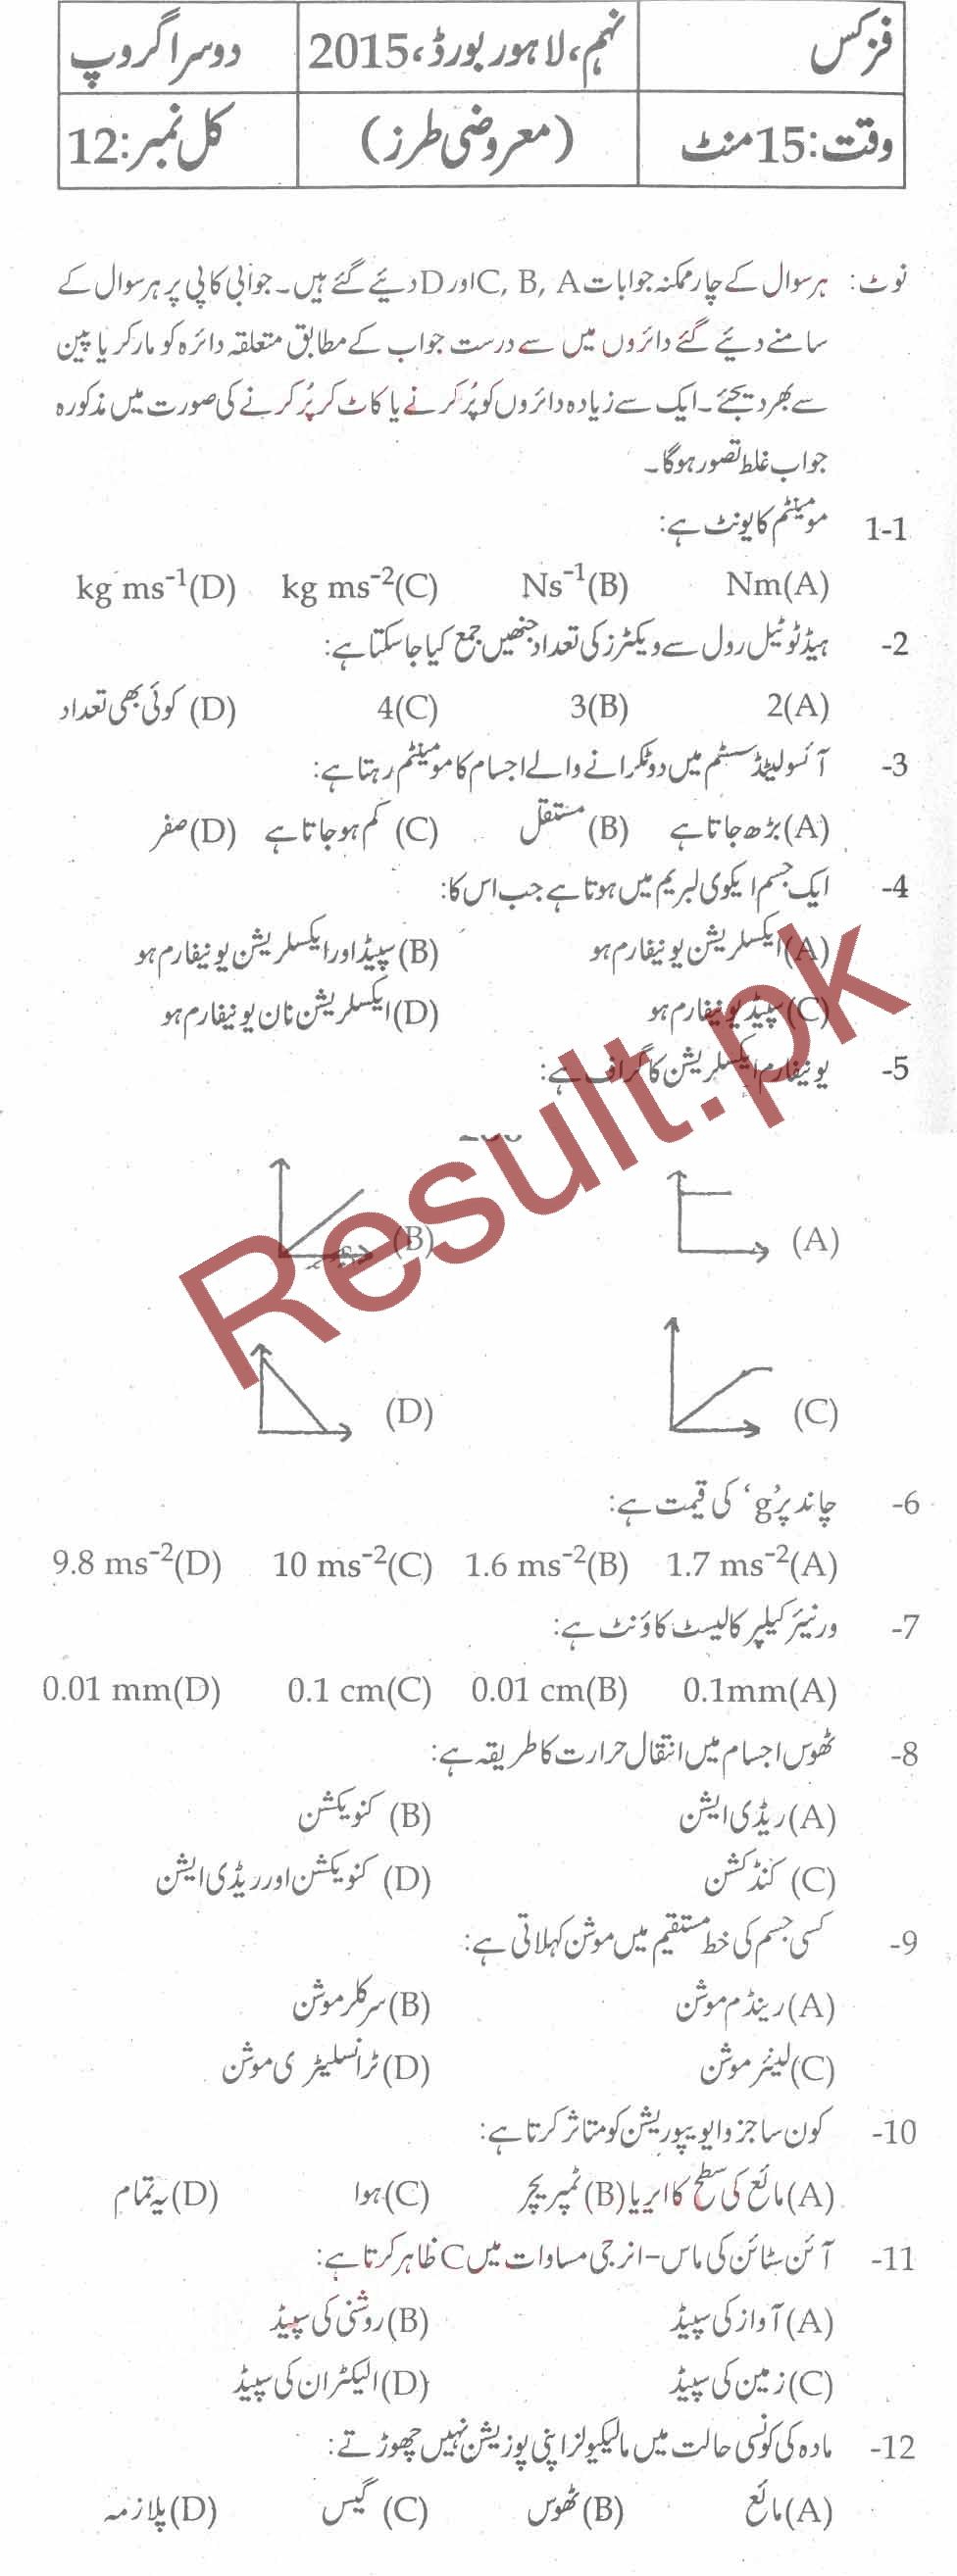 BISE Bahawalpur Board Past Papers 2018 Matric, SSC Part 1